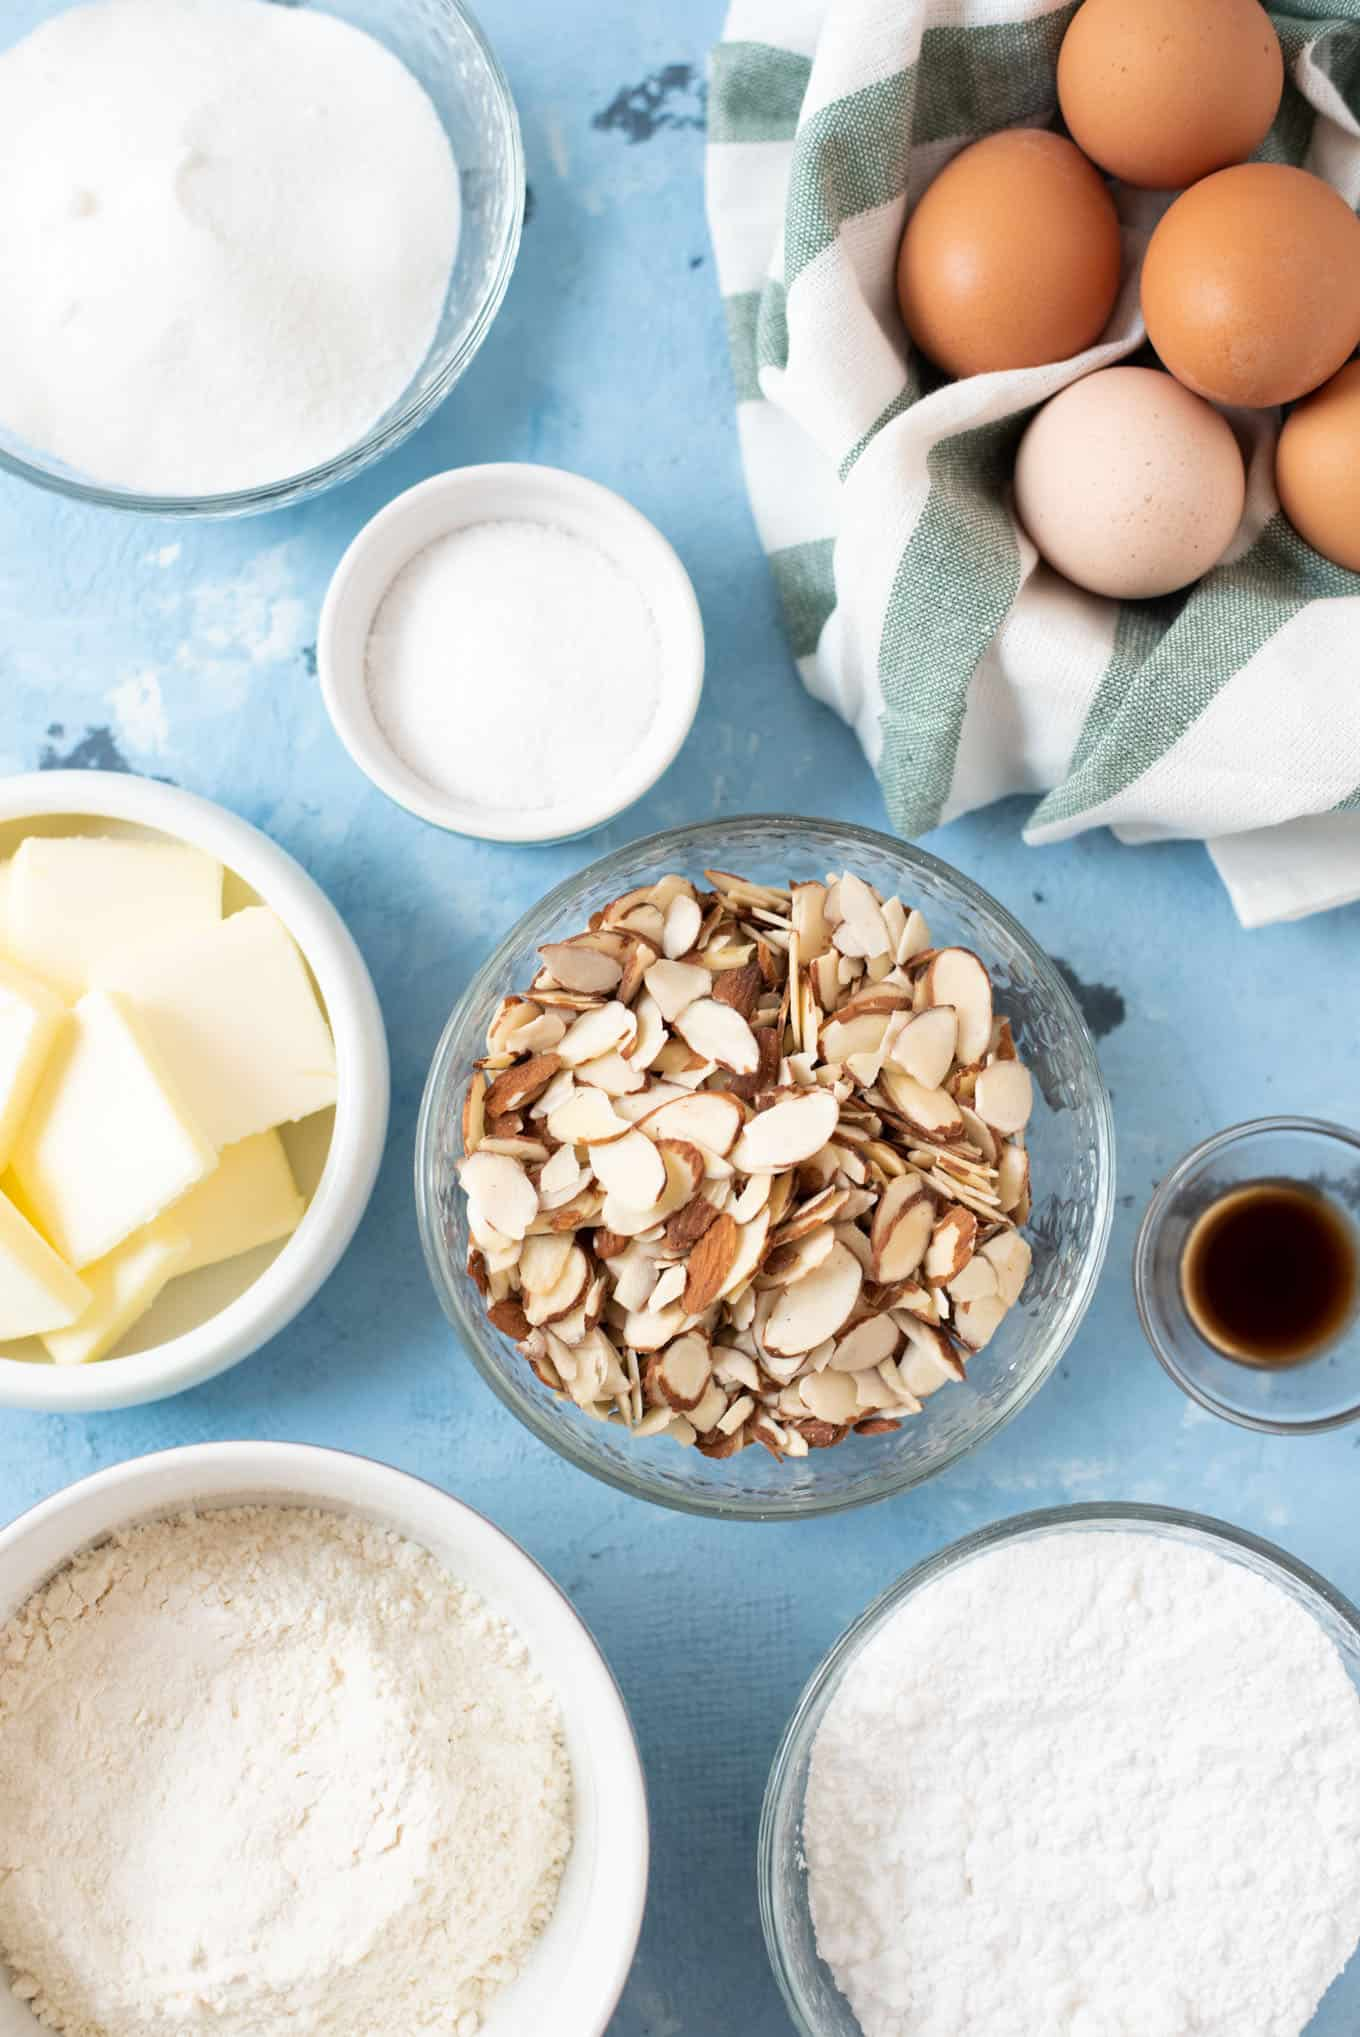 Bowls of butter, sliced almonds, sugar, flour, eggs, and vanilla extract.